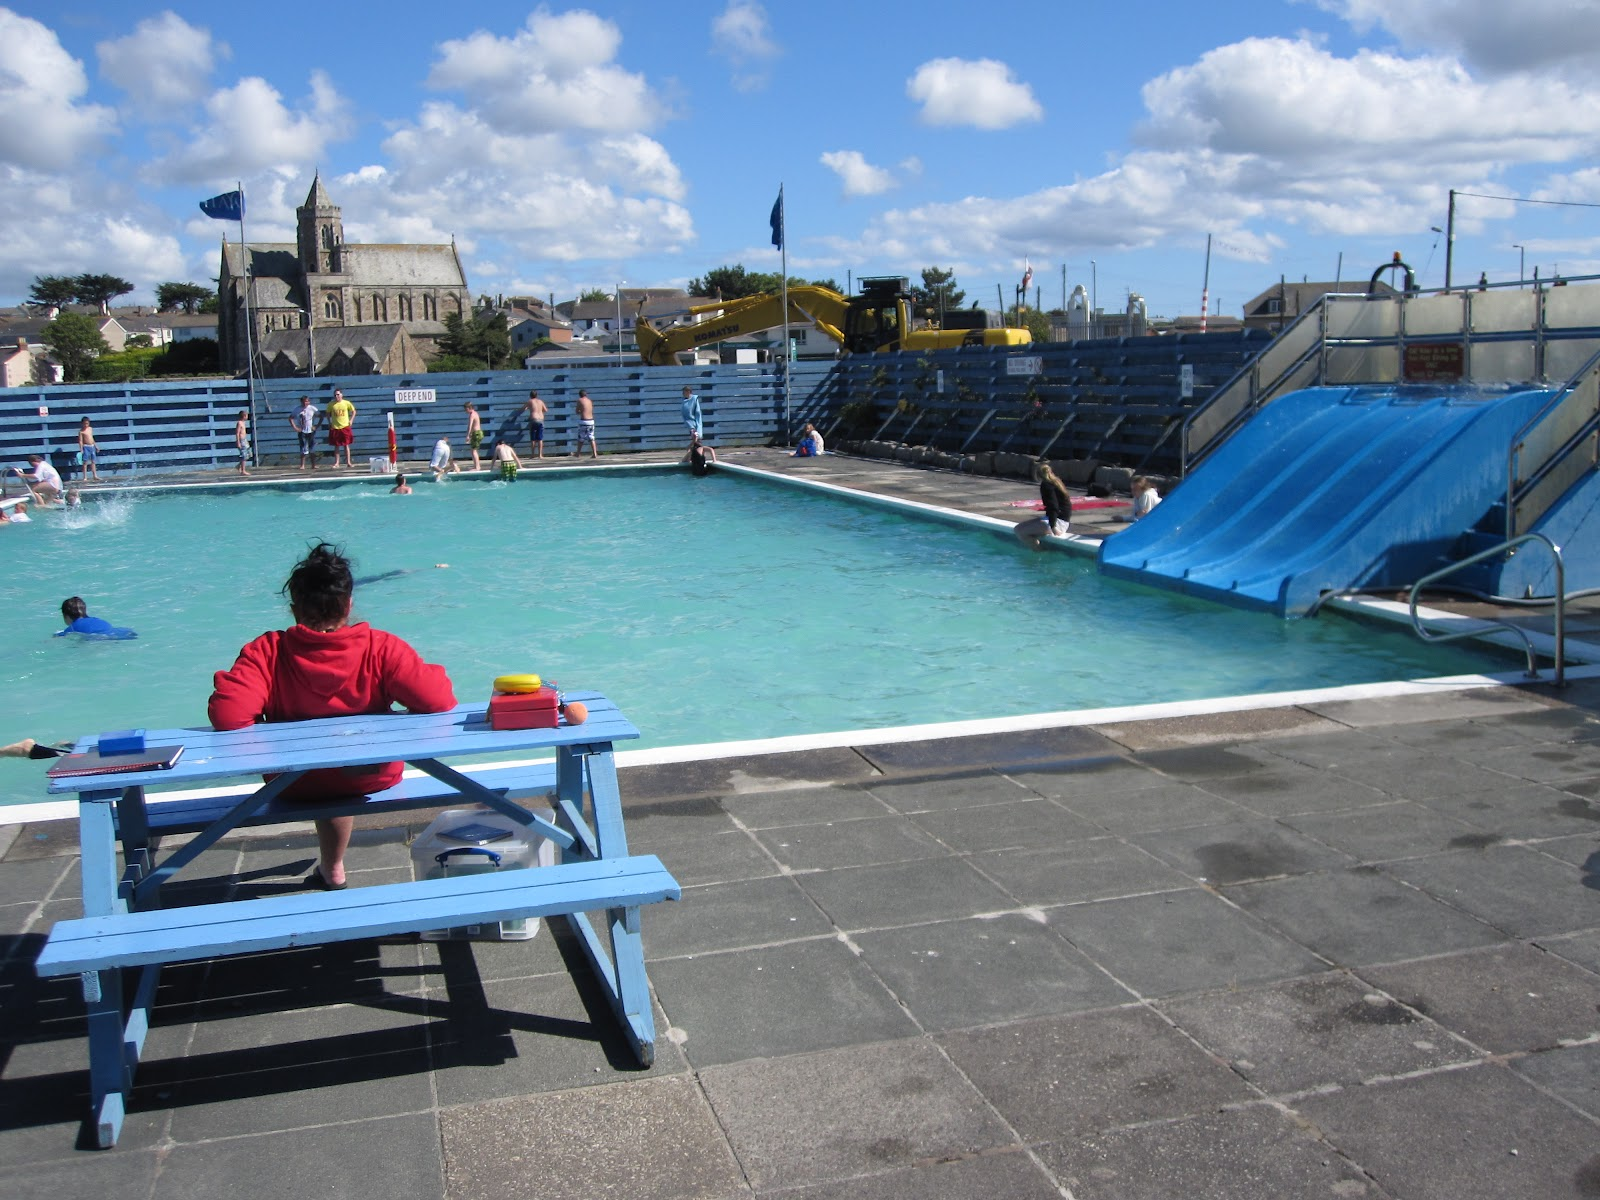 Graham coad 39 s hayle blog 2012 - The quays swimming pool timetable ...